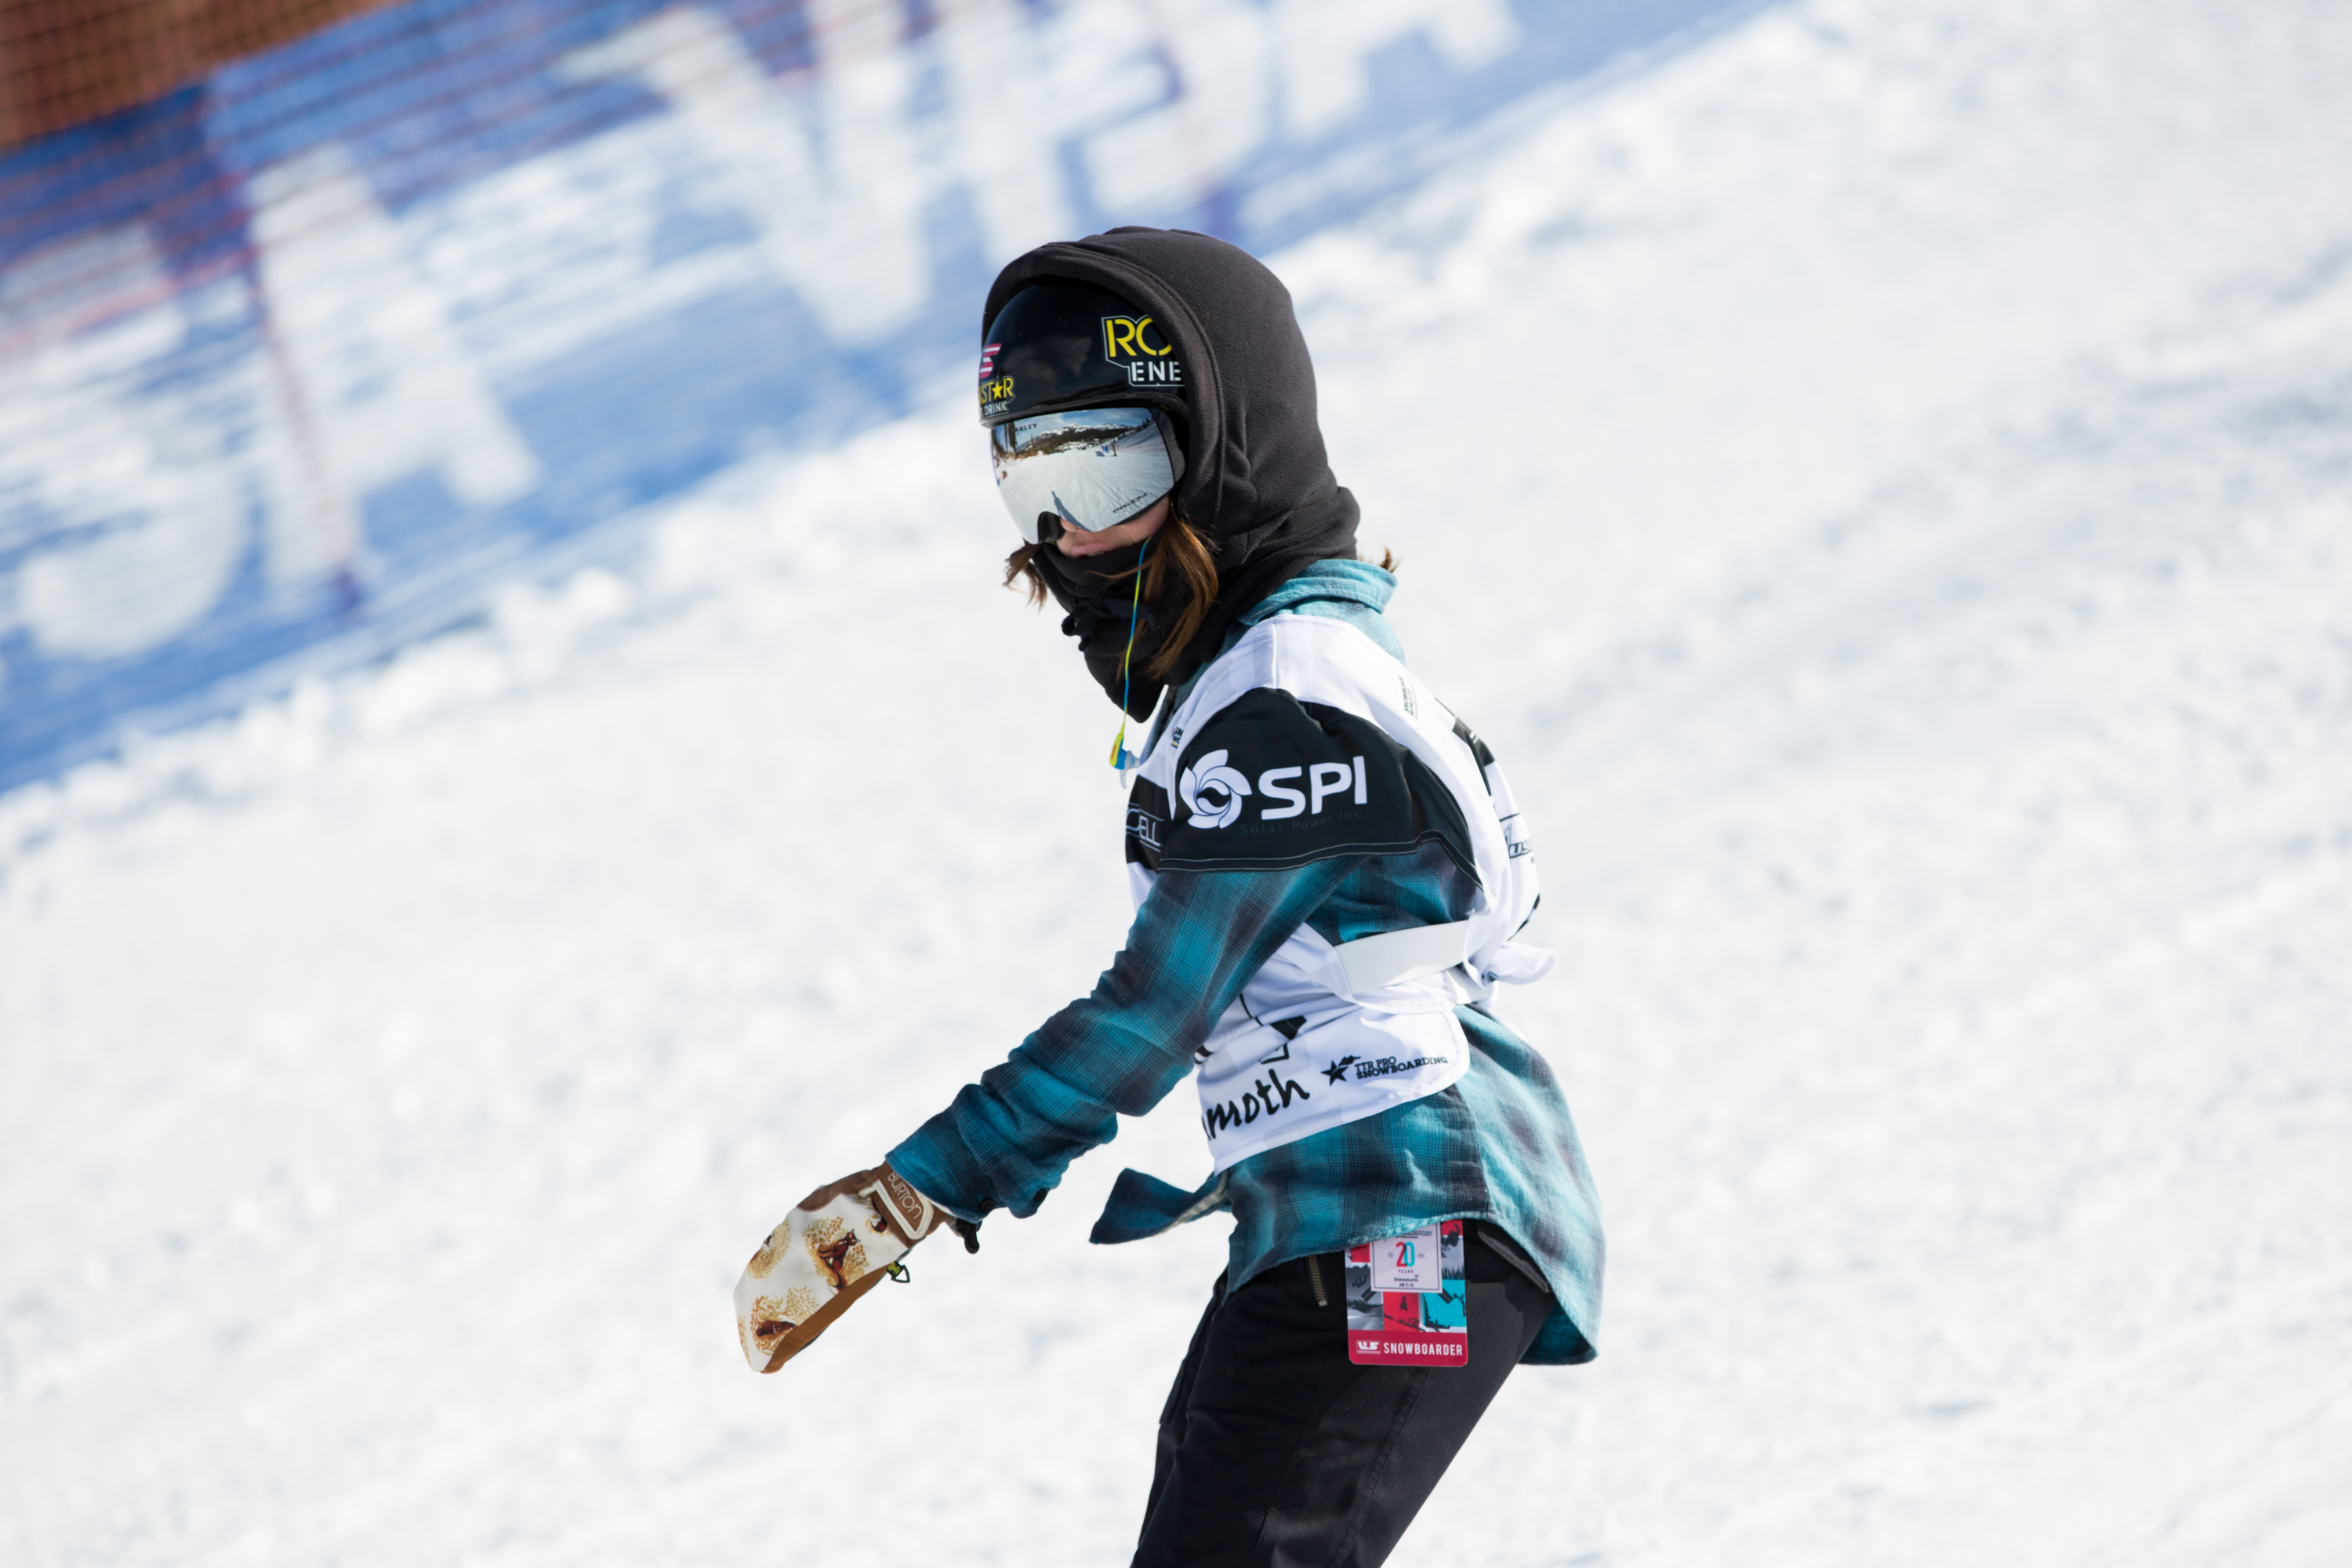 Hailey Langland, 15, won the bronze medal at X Games Aspen on Jan. 29. Photo: US Ski and Snowboarding Association